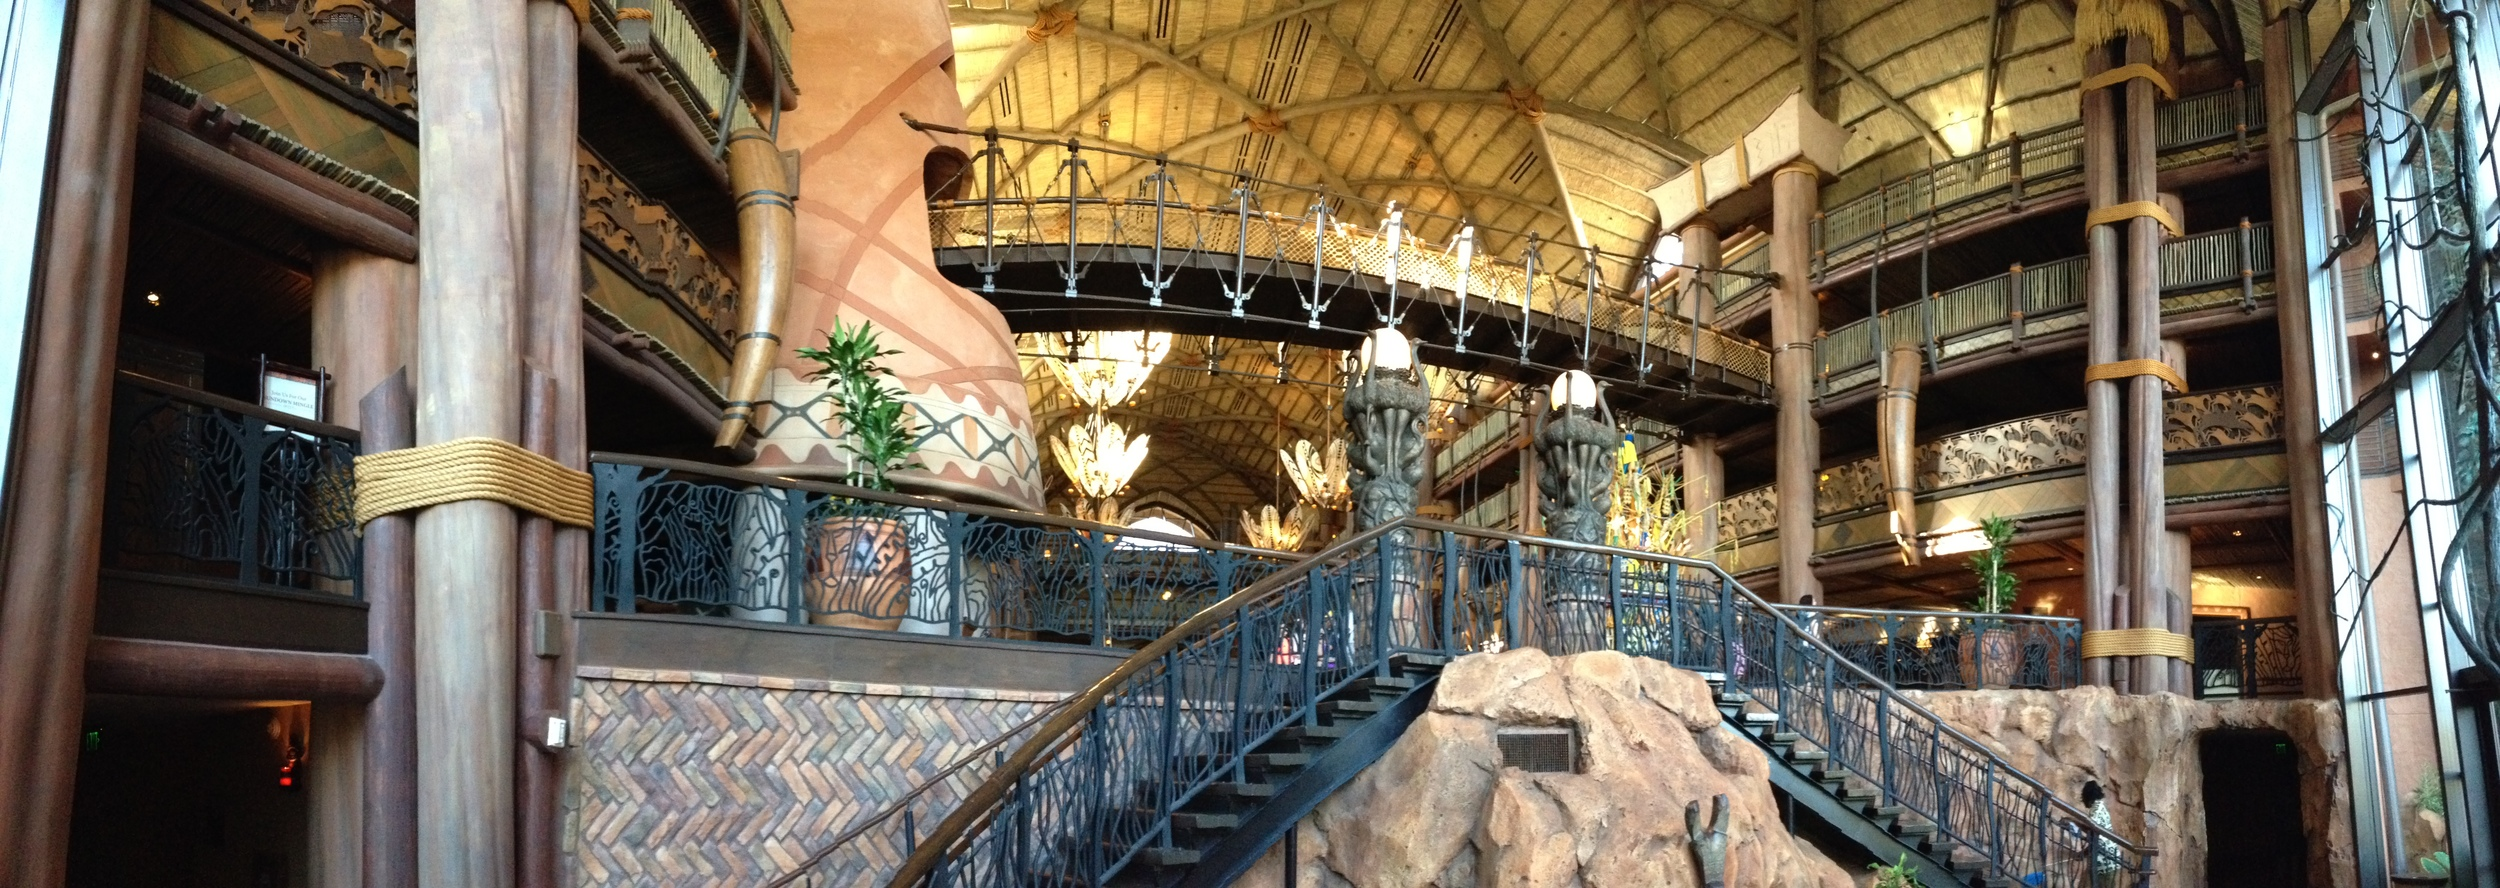 Disney's Animal Kingdom Lodge from the bottom of the lobby stairs.